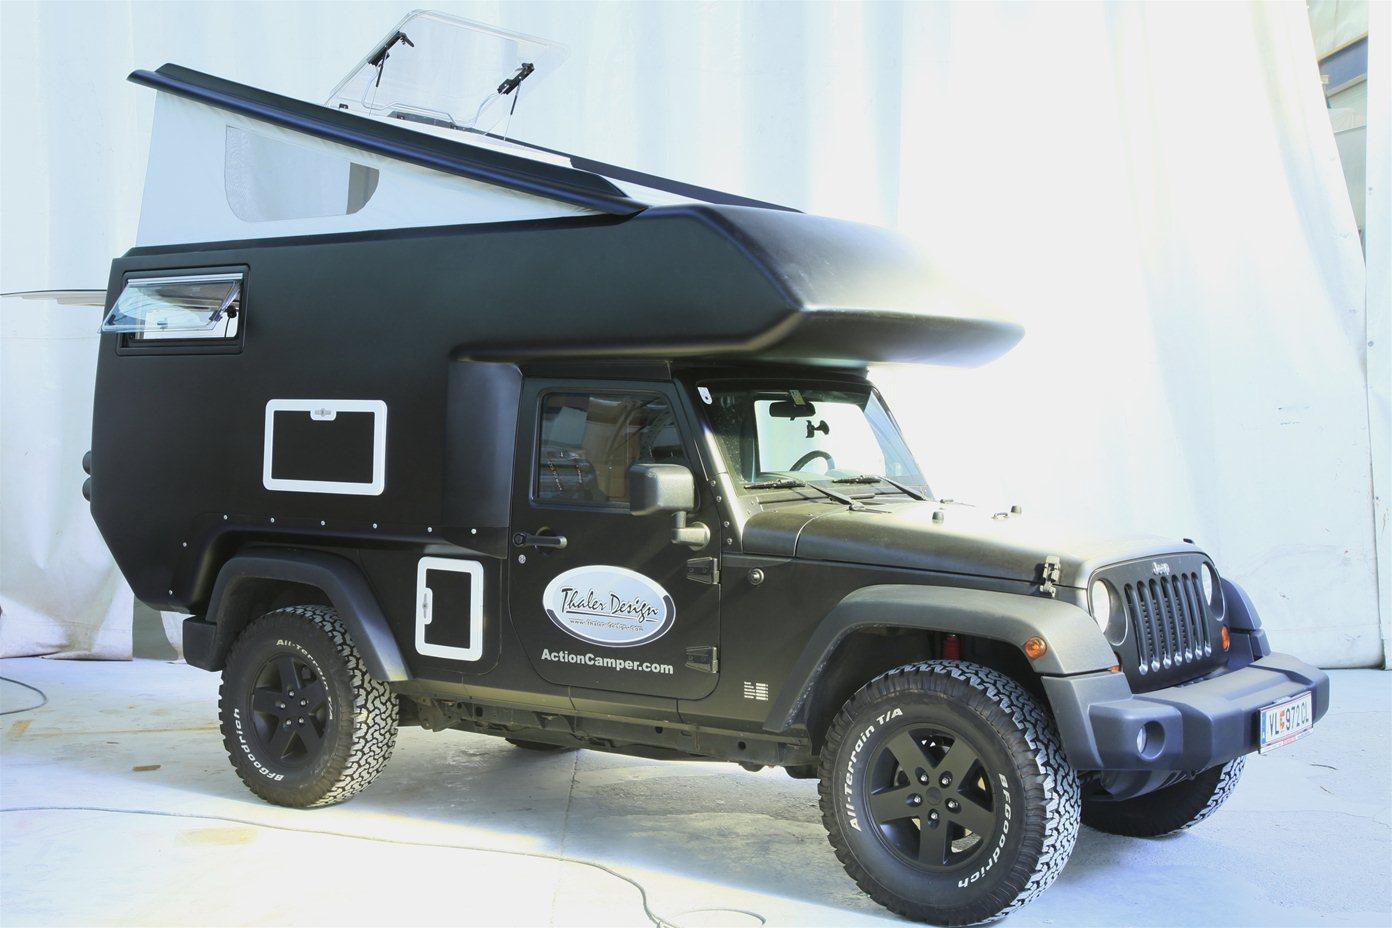 The Action Camper makes your Jeep an all-terrain RV